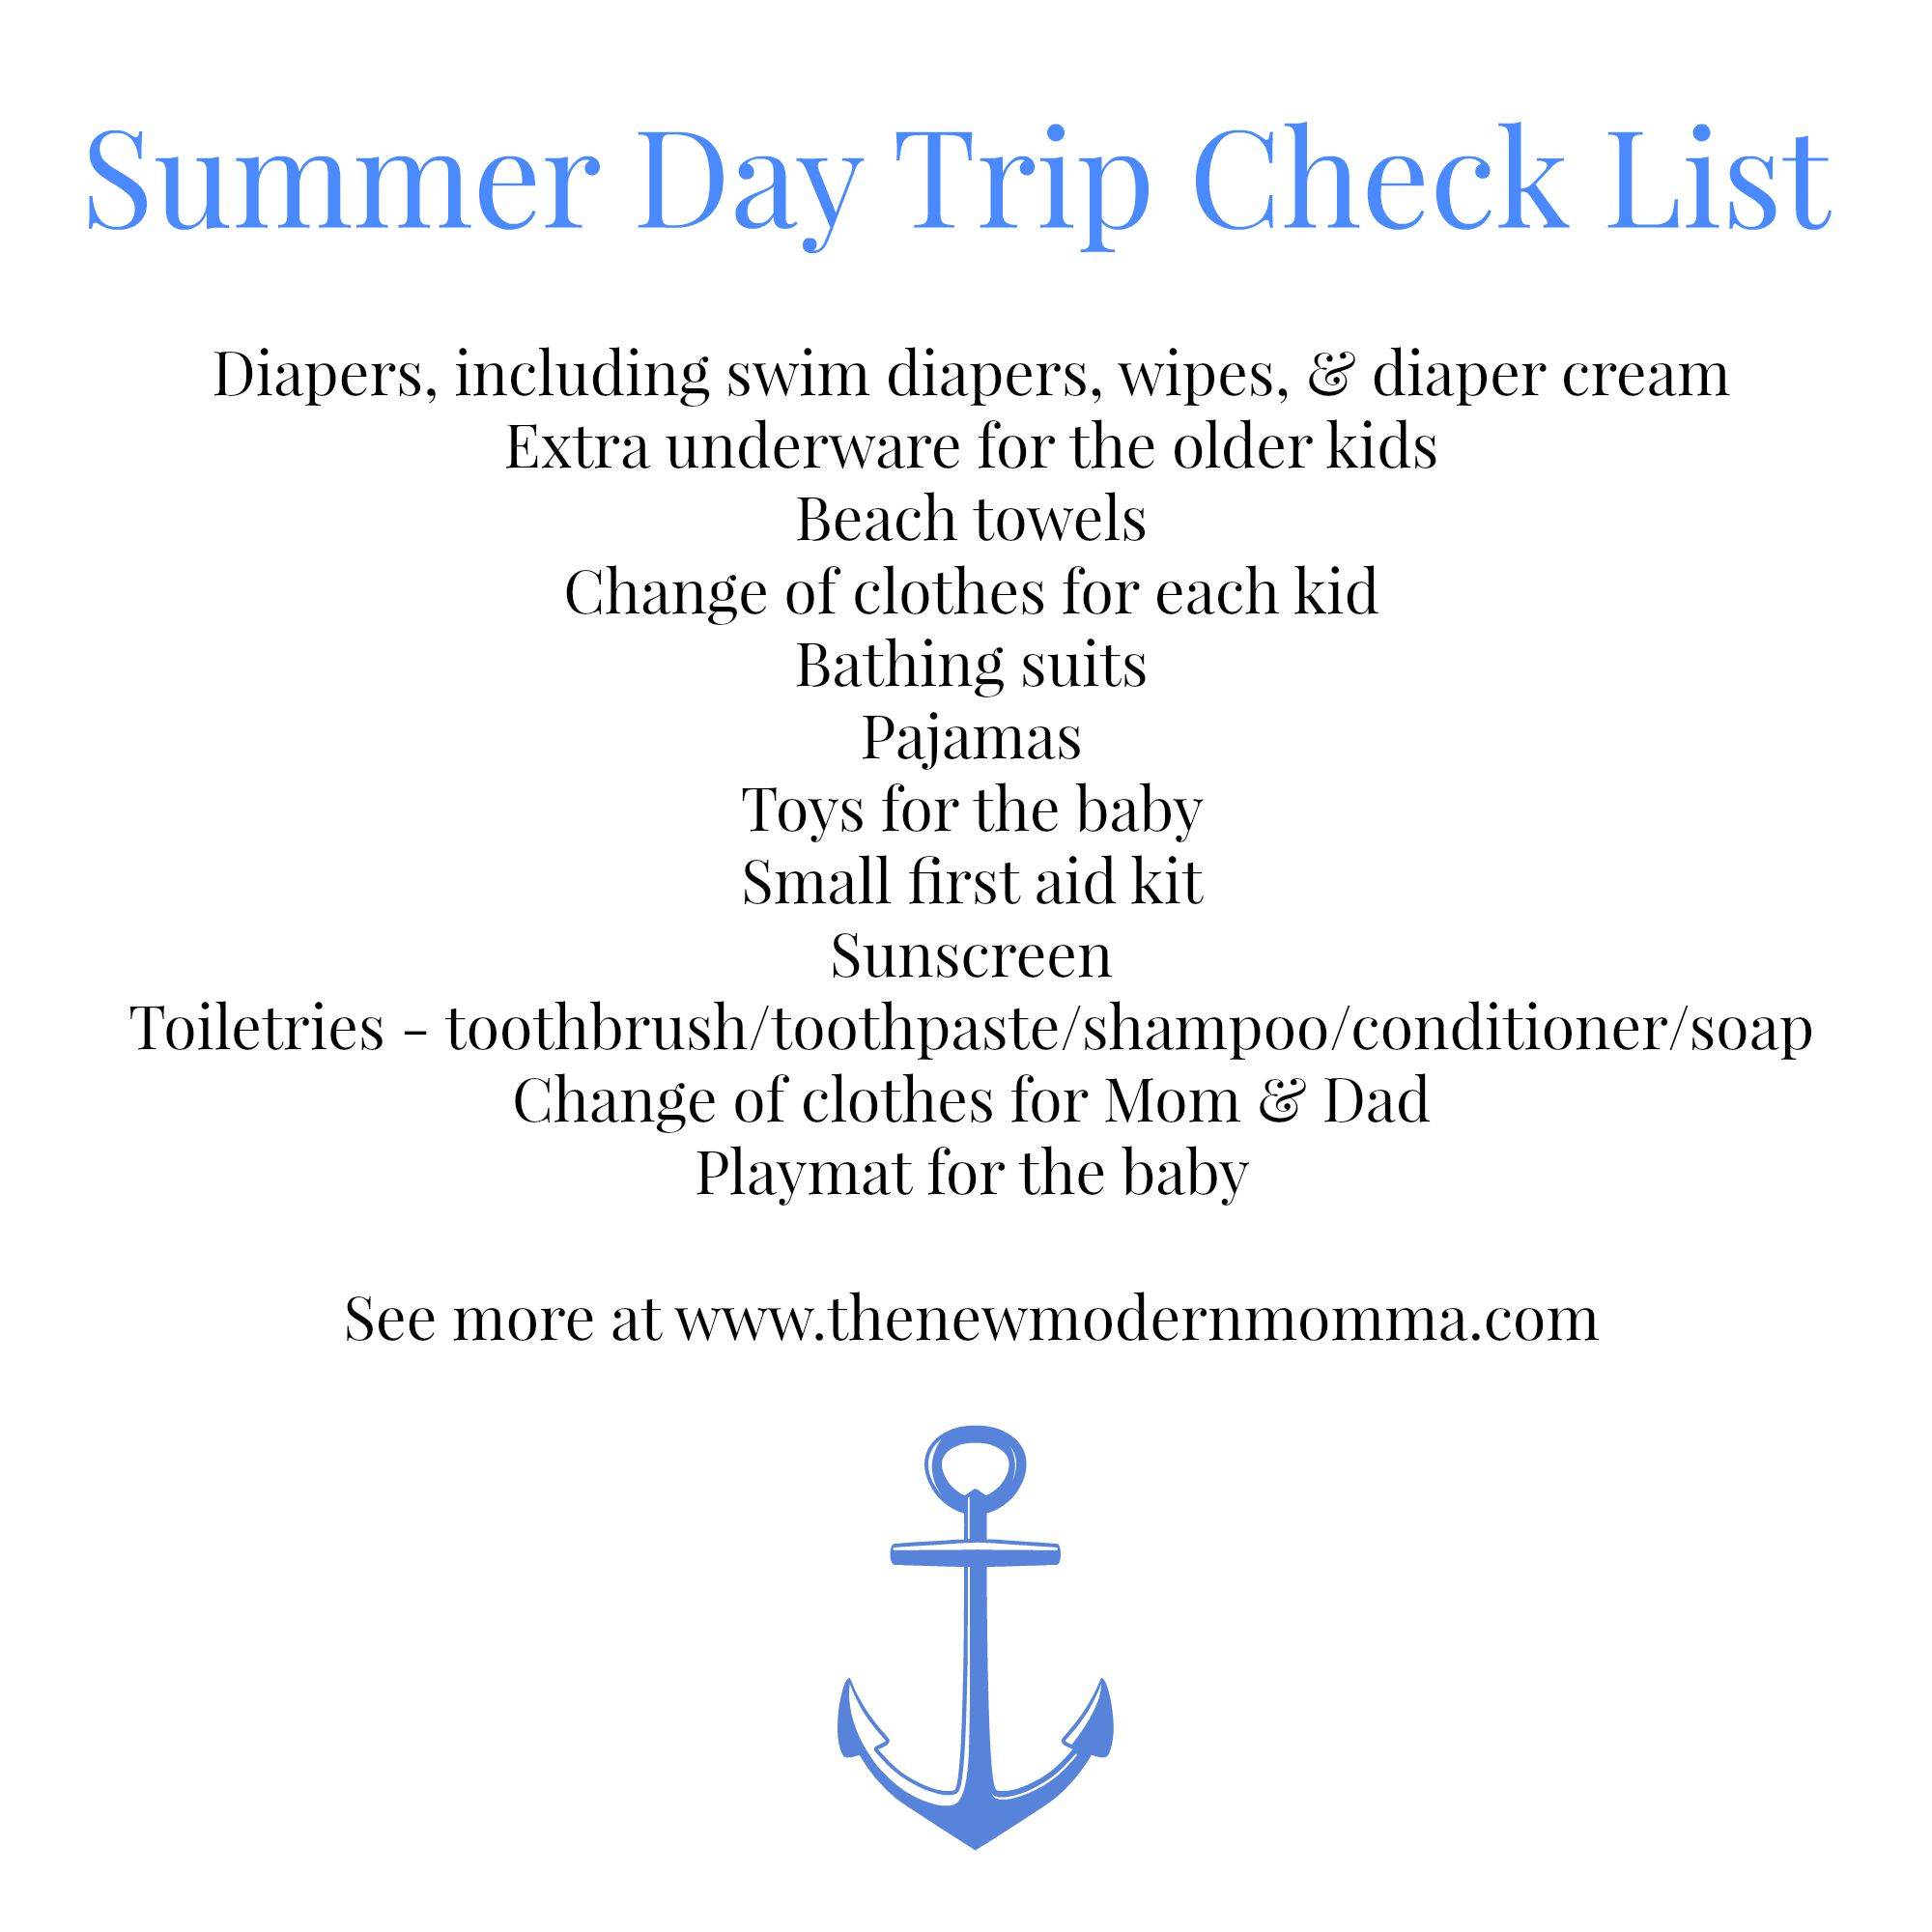 Summer Day Trip Check List